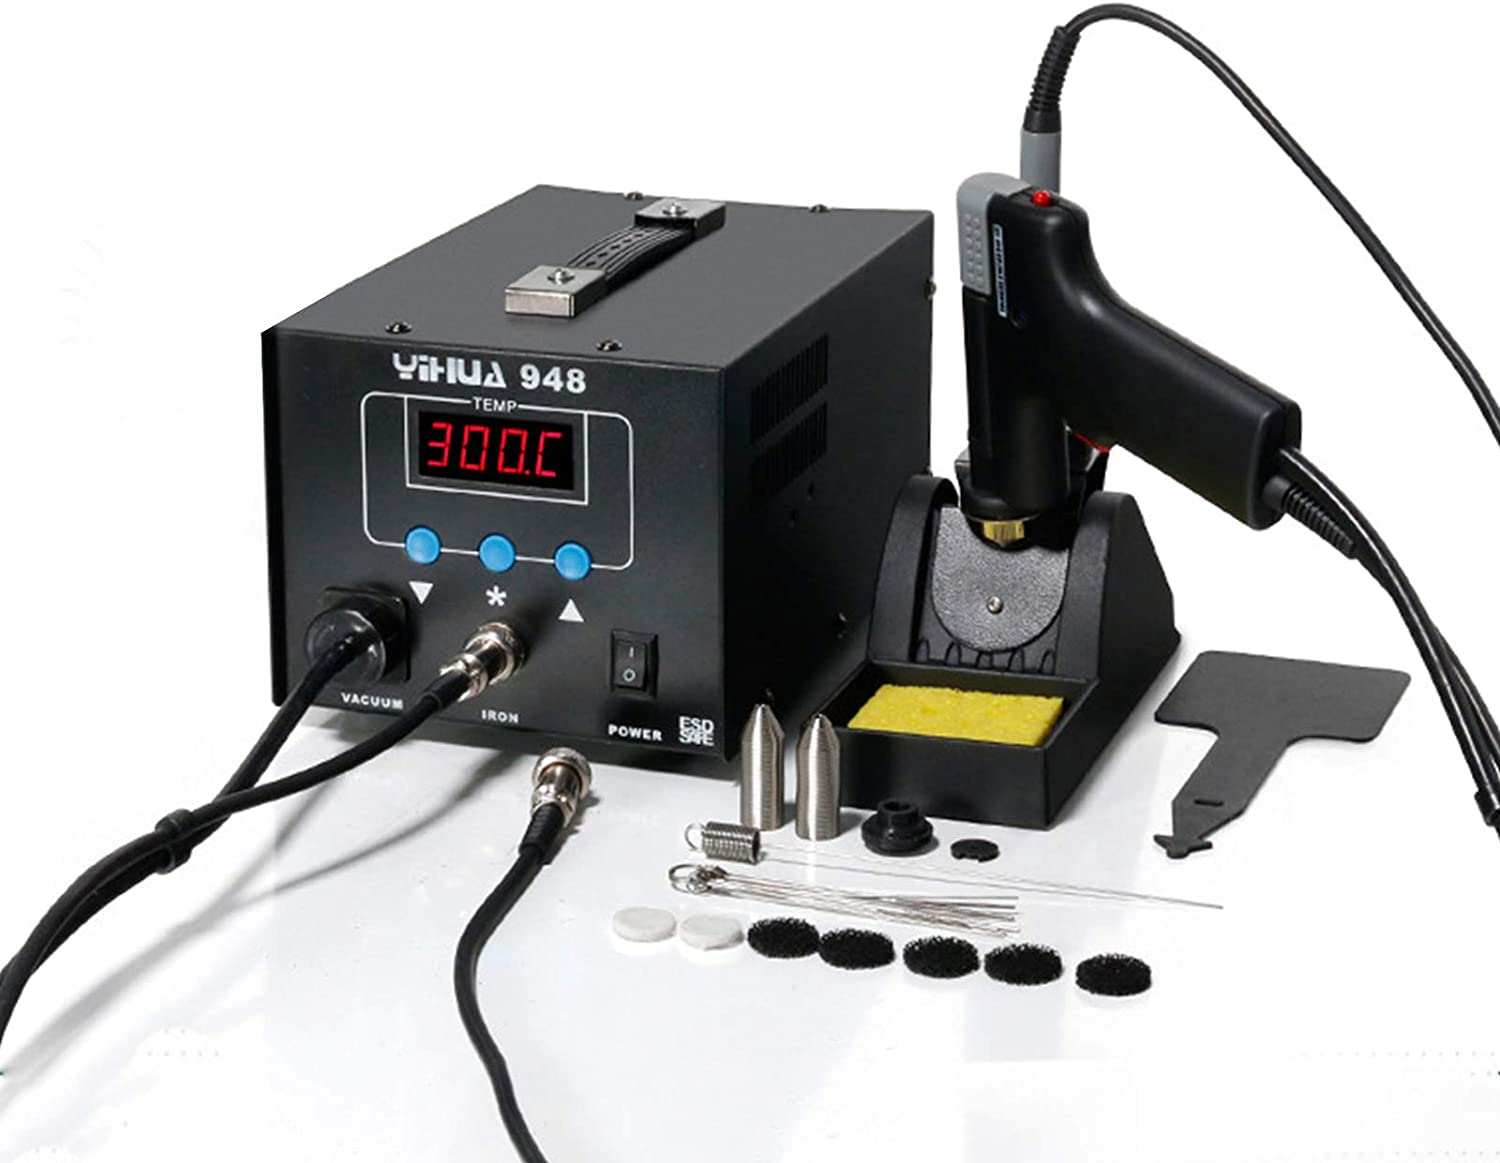 TBVECHI Soldering Station YH-948 2 Desoldering 1 Super intense SALE Direct stock discount 80W in